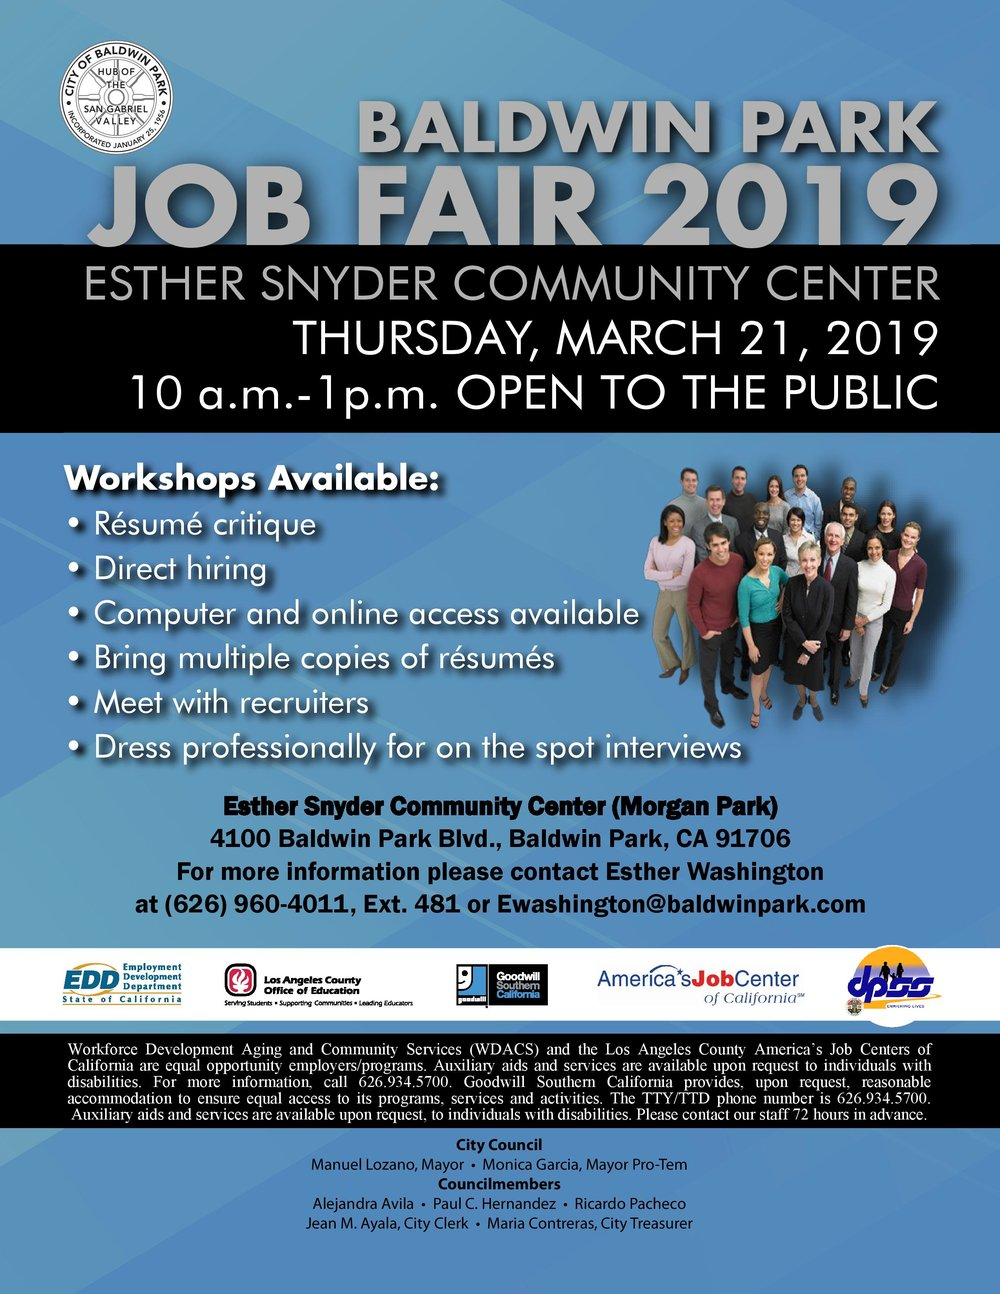 Baldwin park job fair 2019 - March 21st, 2019